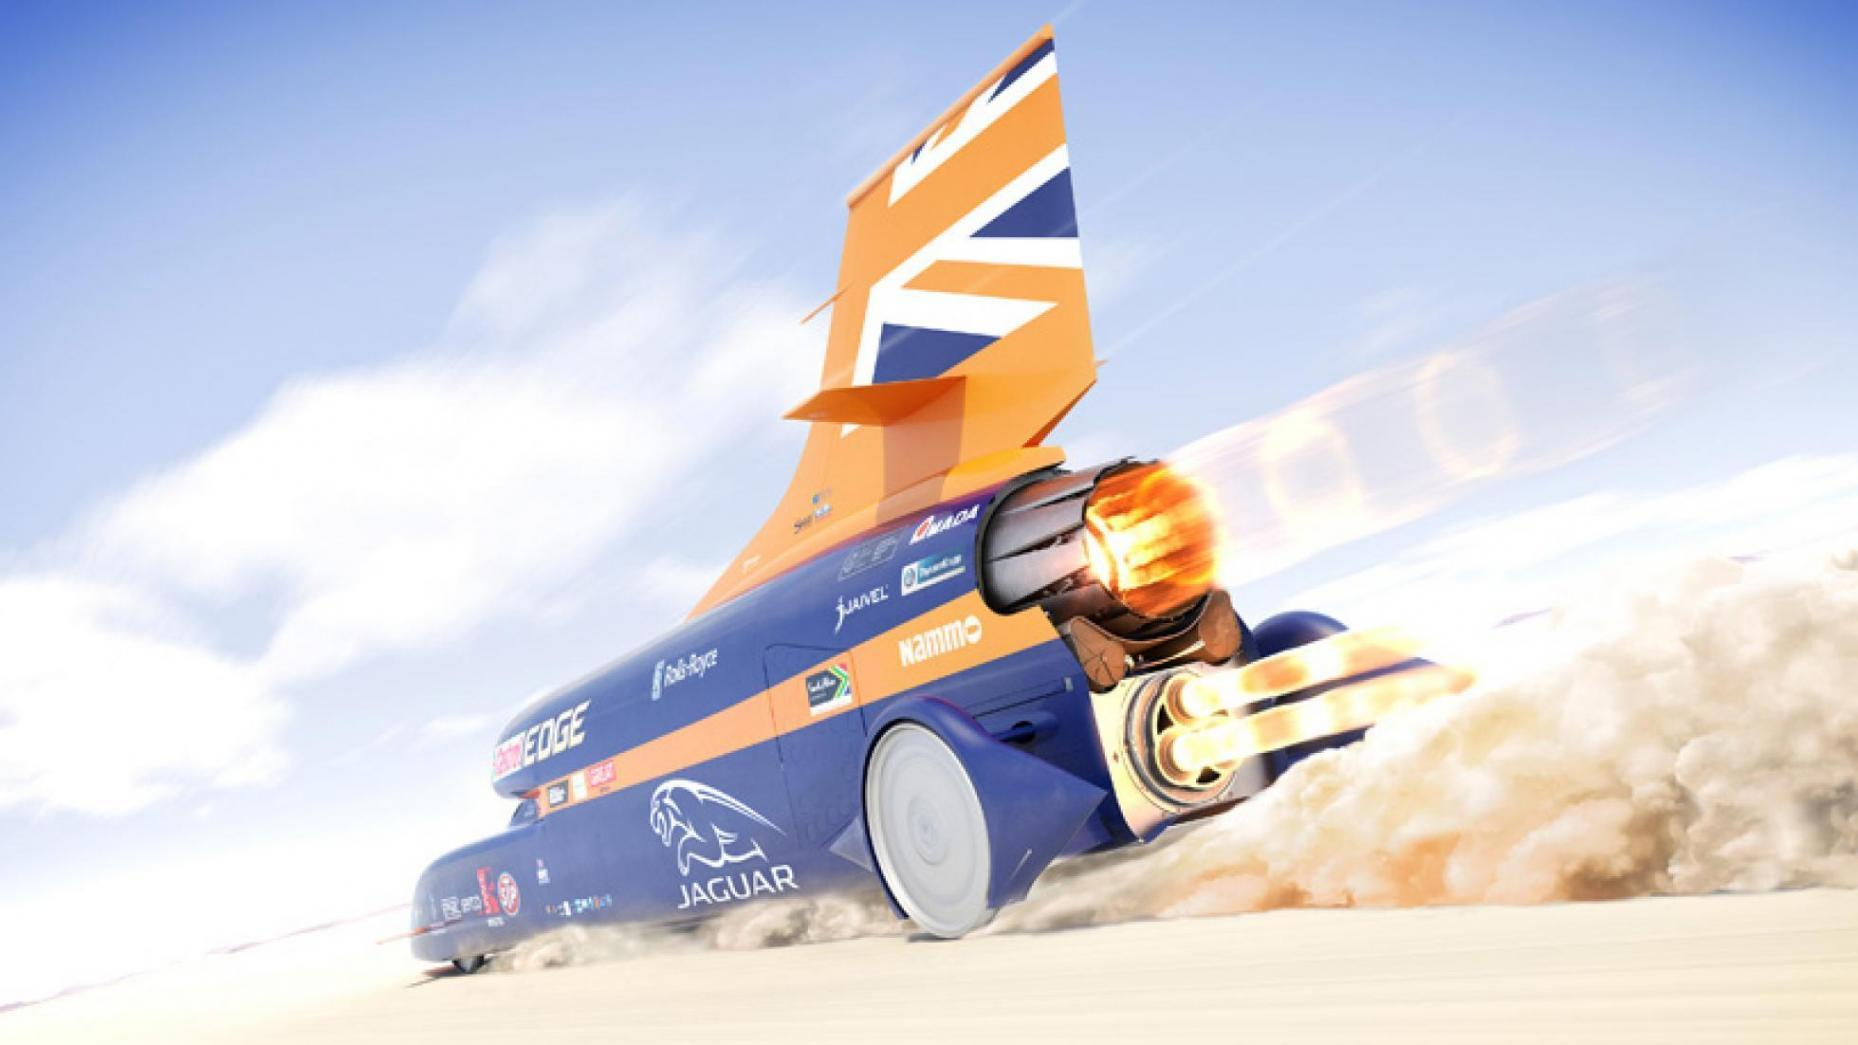 Project Bloodhound